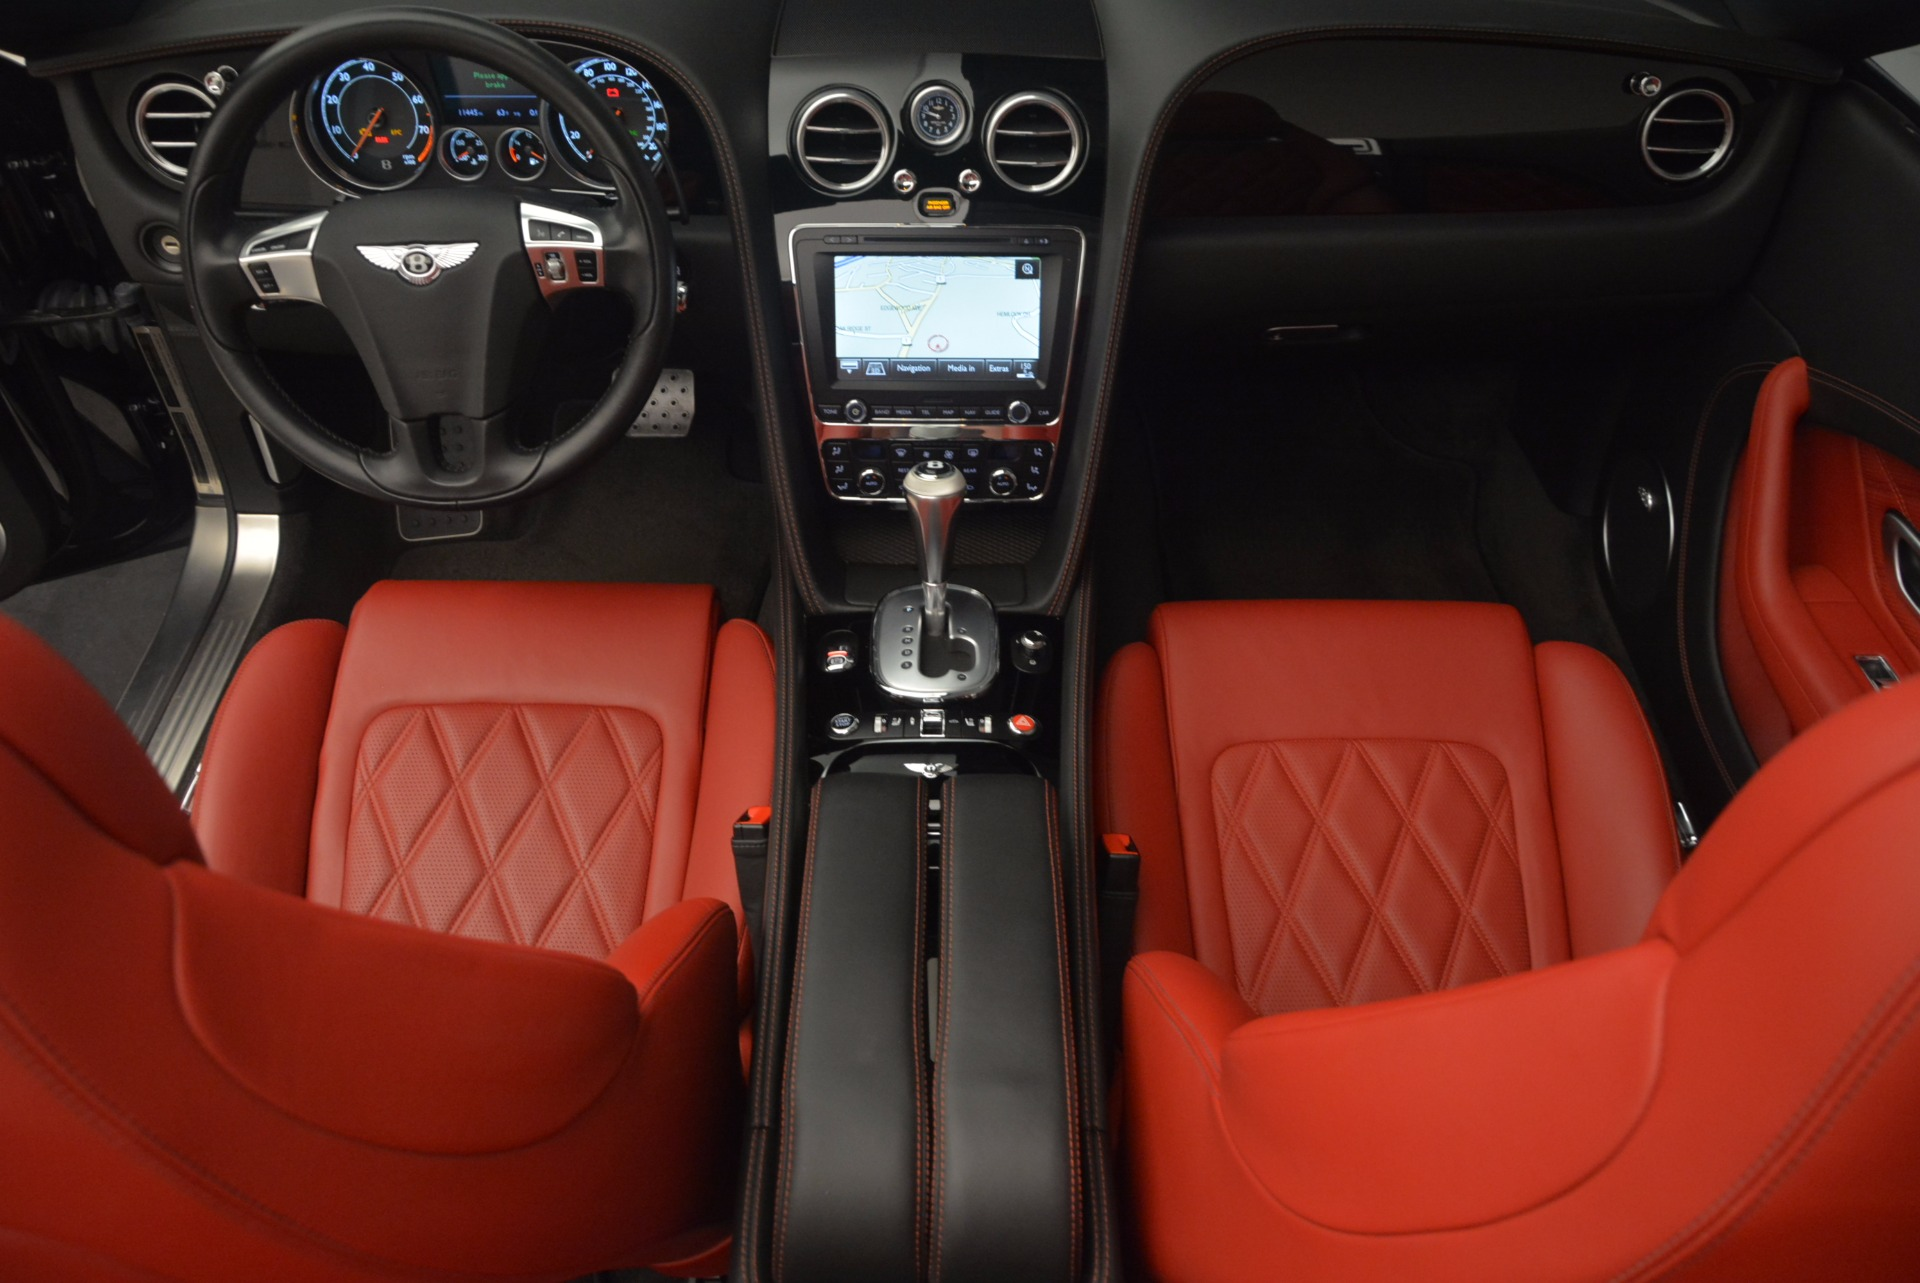 Used 2012 Bentley Continental GT W12 Convertible For Sale In Westport, CT 1104_p42